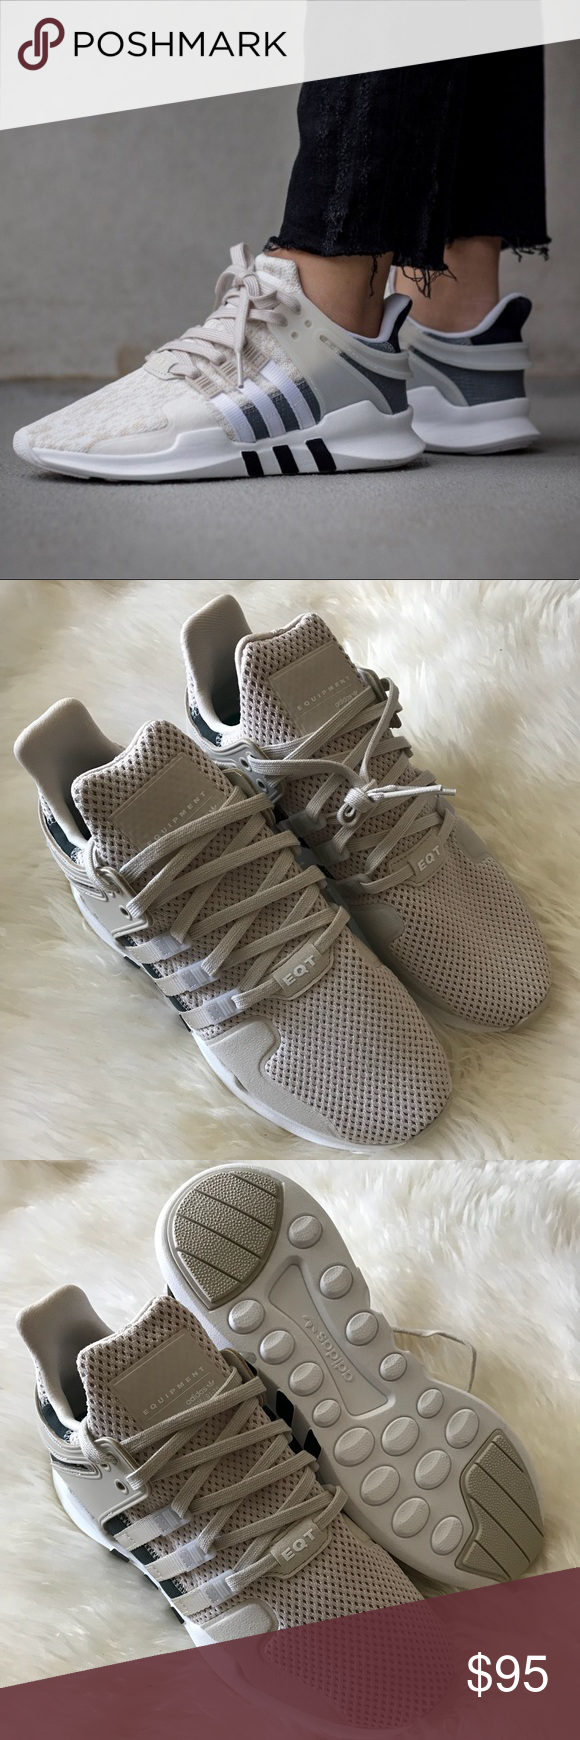 8607a7940e19e 🔥RESTOCK🔥 Adidas EQT support sneakers Adidas equipment support original  sneakers New with box Price is firm !!The OPTIONS to buy are already  converted in ...